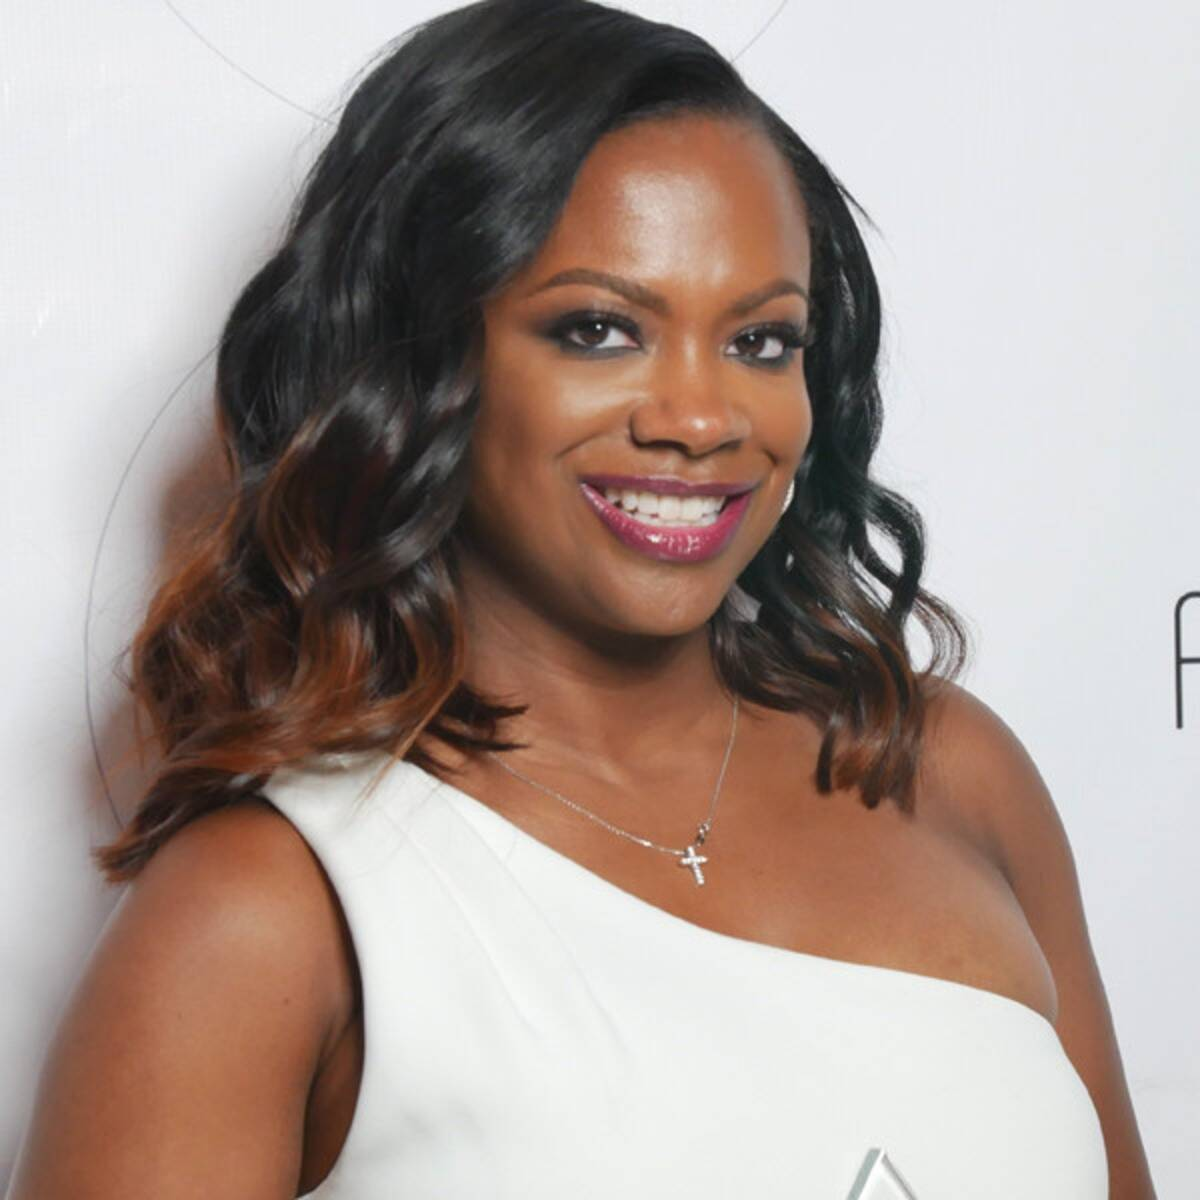 Kandi Burruss Shares New Pics Featuring Blaze Tucker – Check Out The Post That Made Fans Smile